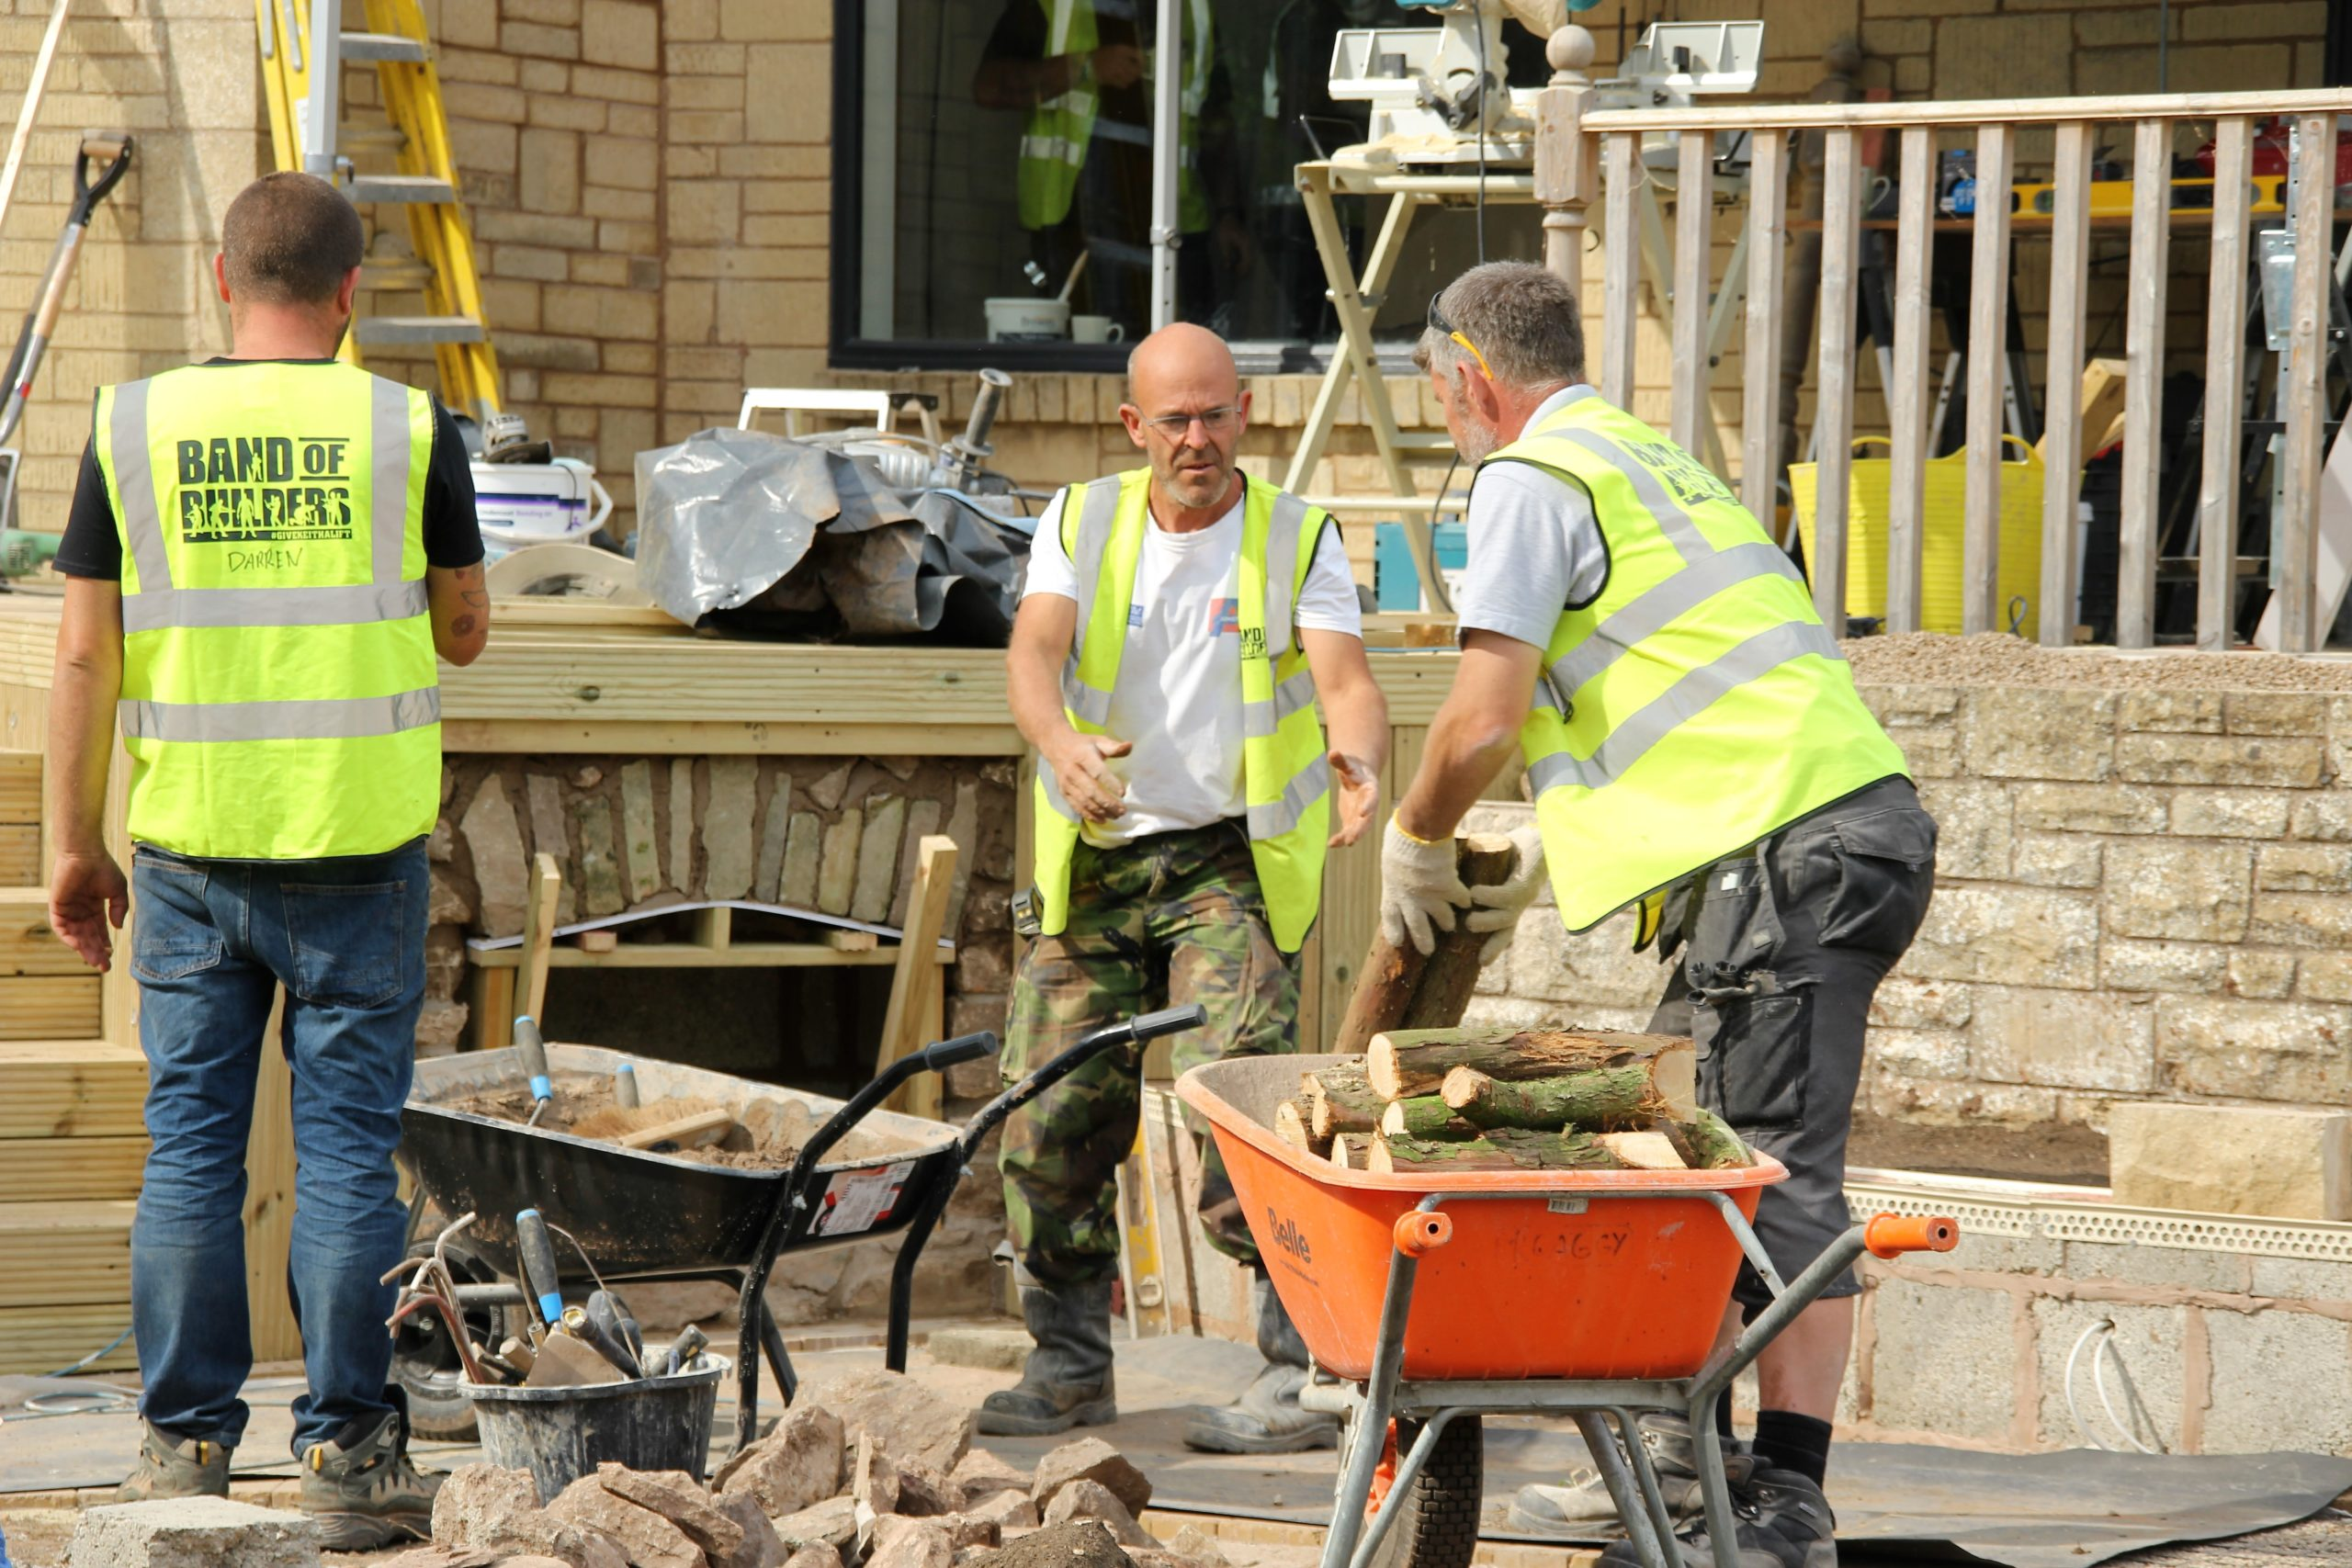 Band of Builders launches hardship fund to help tradespeople affected by coronavirus crisis